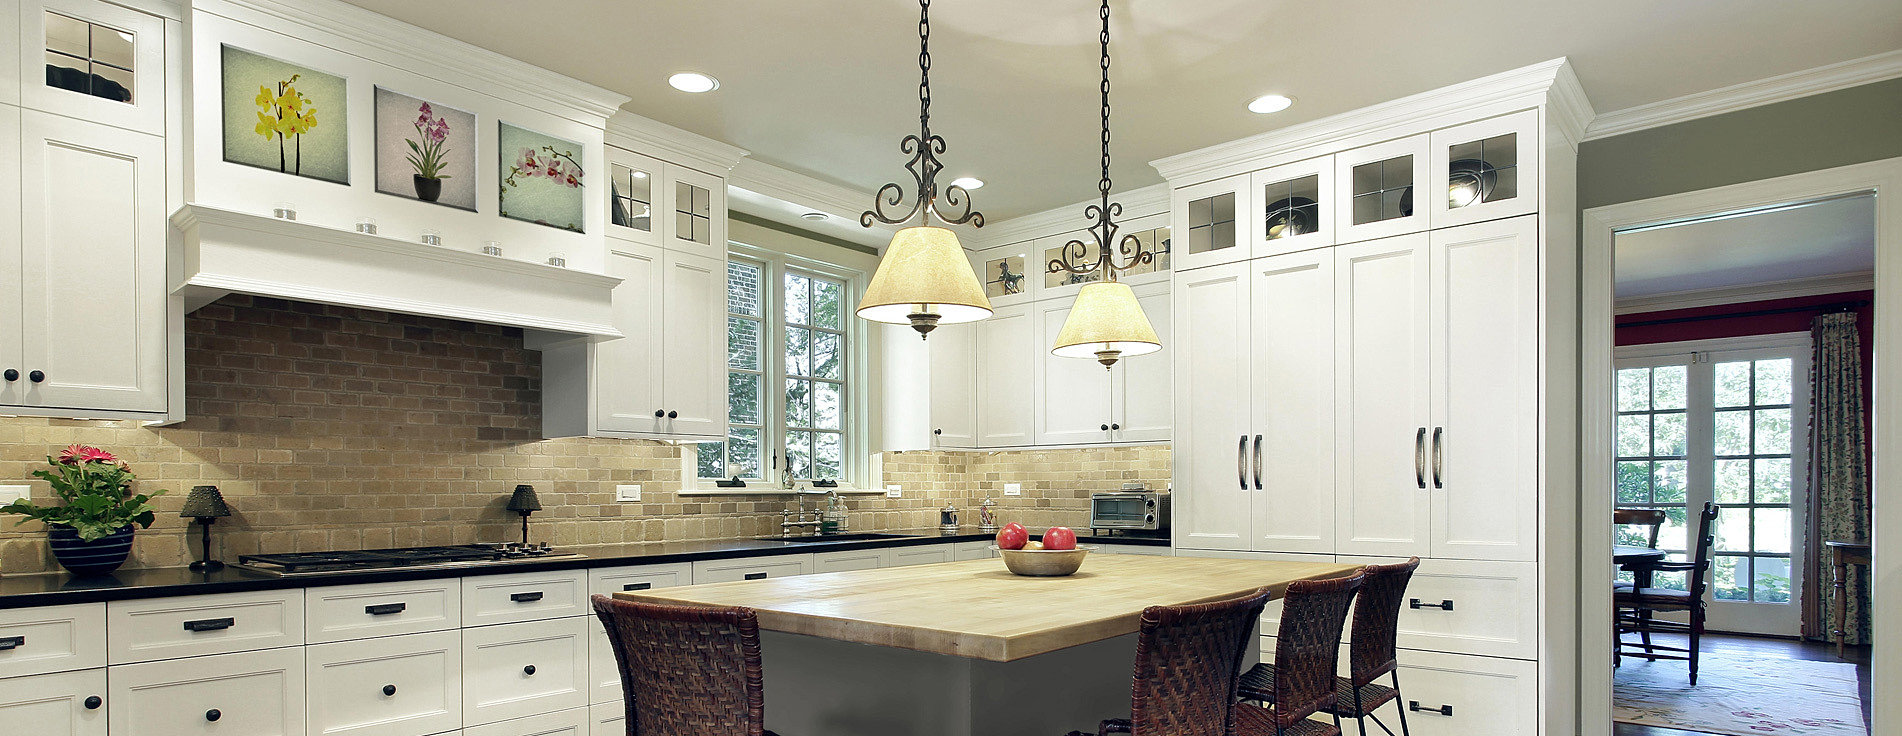 exceptional Kitchen Remodeling Virginia Beach Va #1: Kitchen Remodeling Contractor